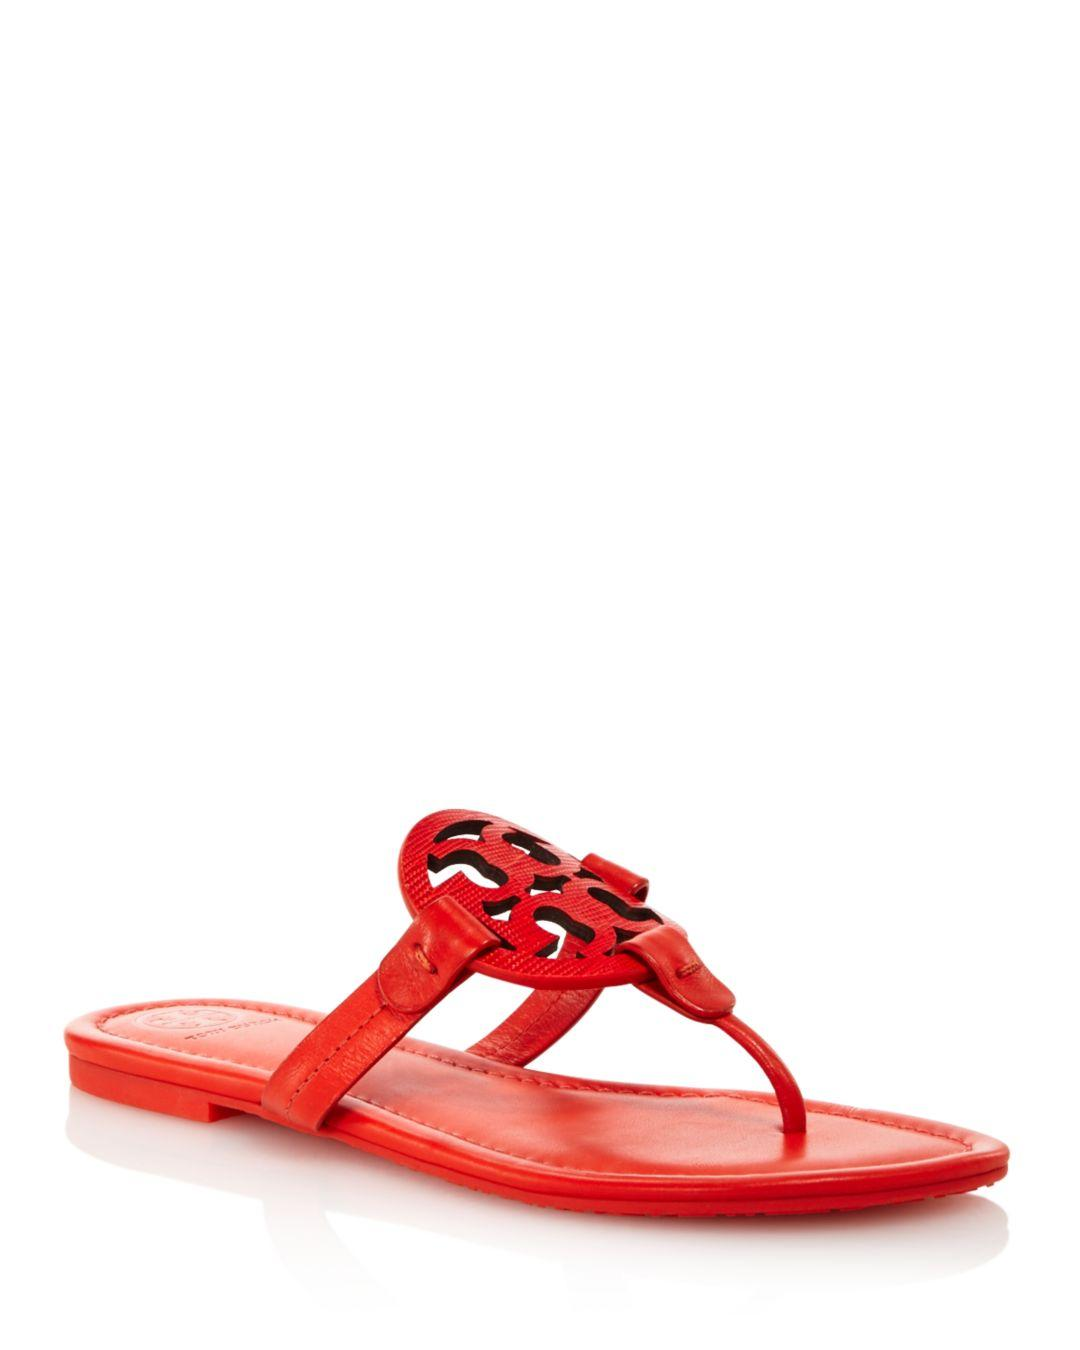 d98f91ffe70dfb Lyst - Tory Burch Women s Miller Thong Sandals in Red